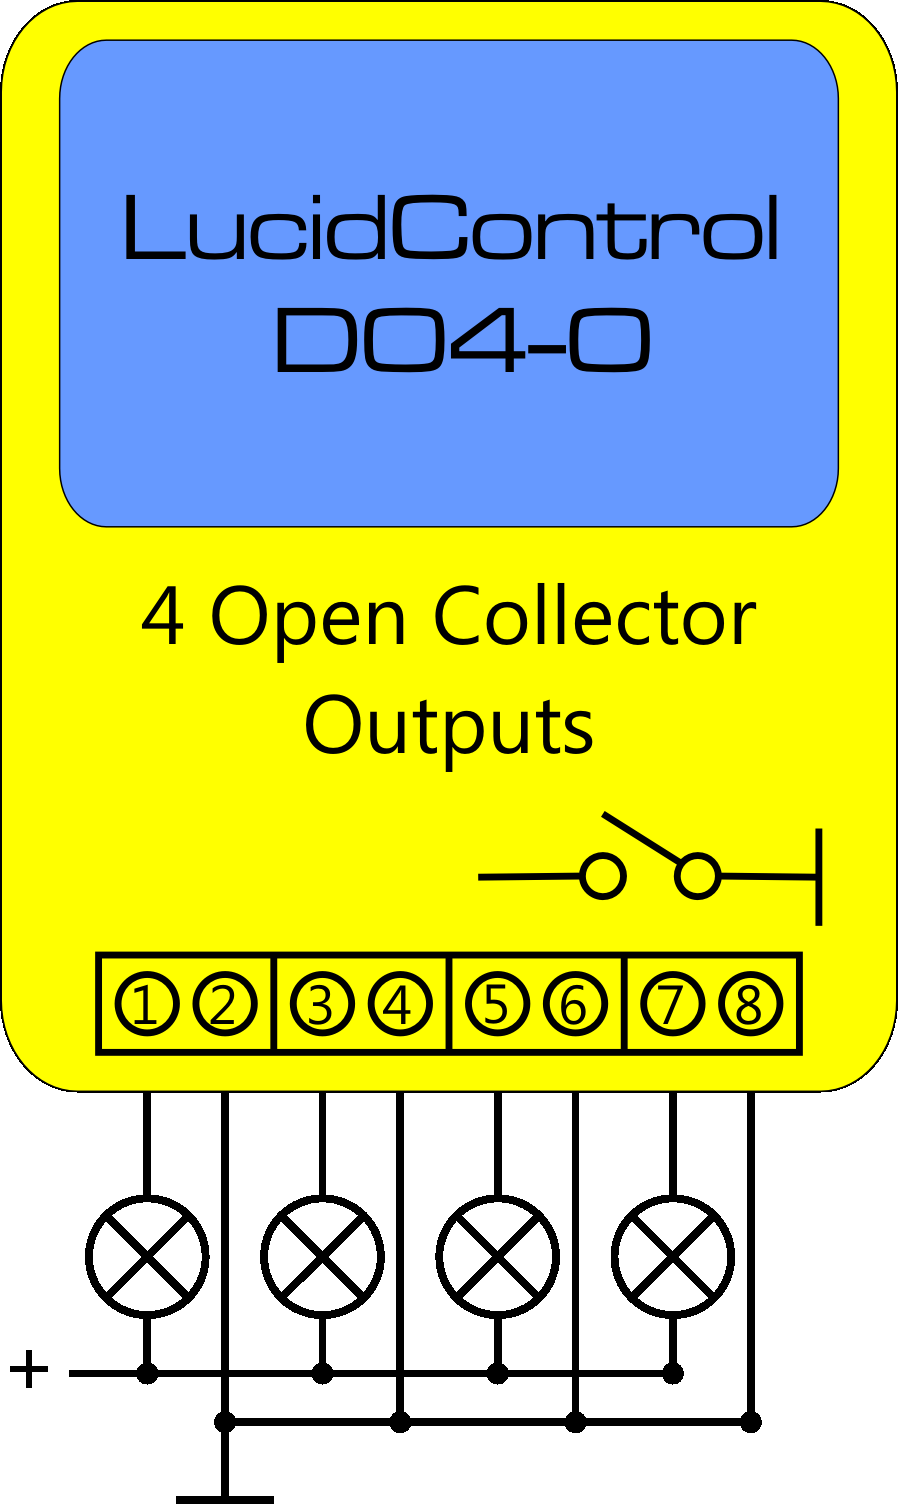 Lucid Control Digital Output Open Collector Schematic Connection